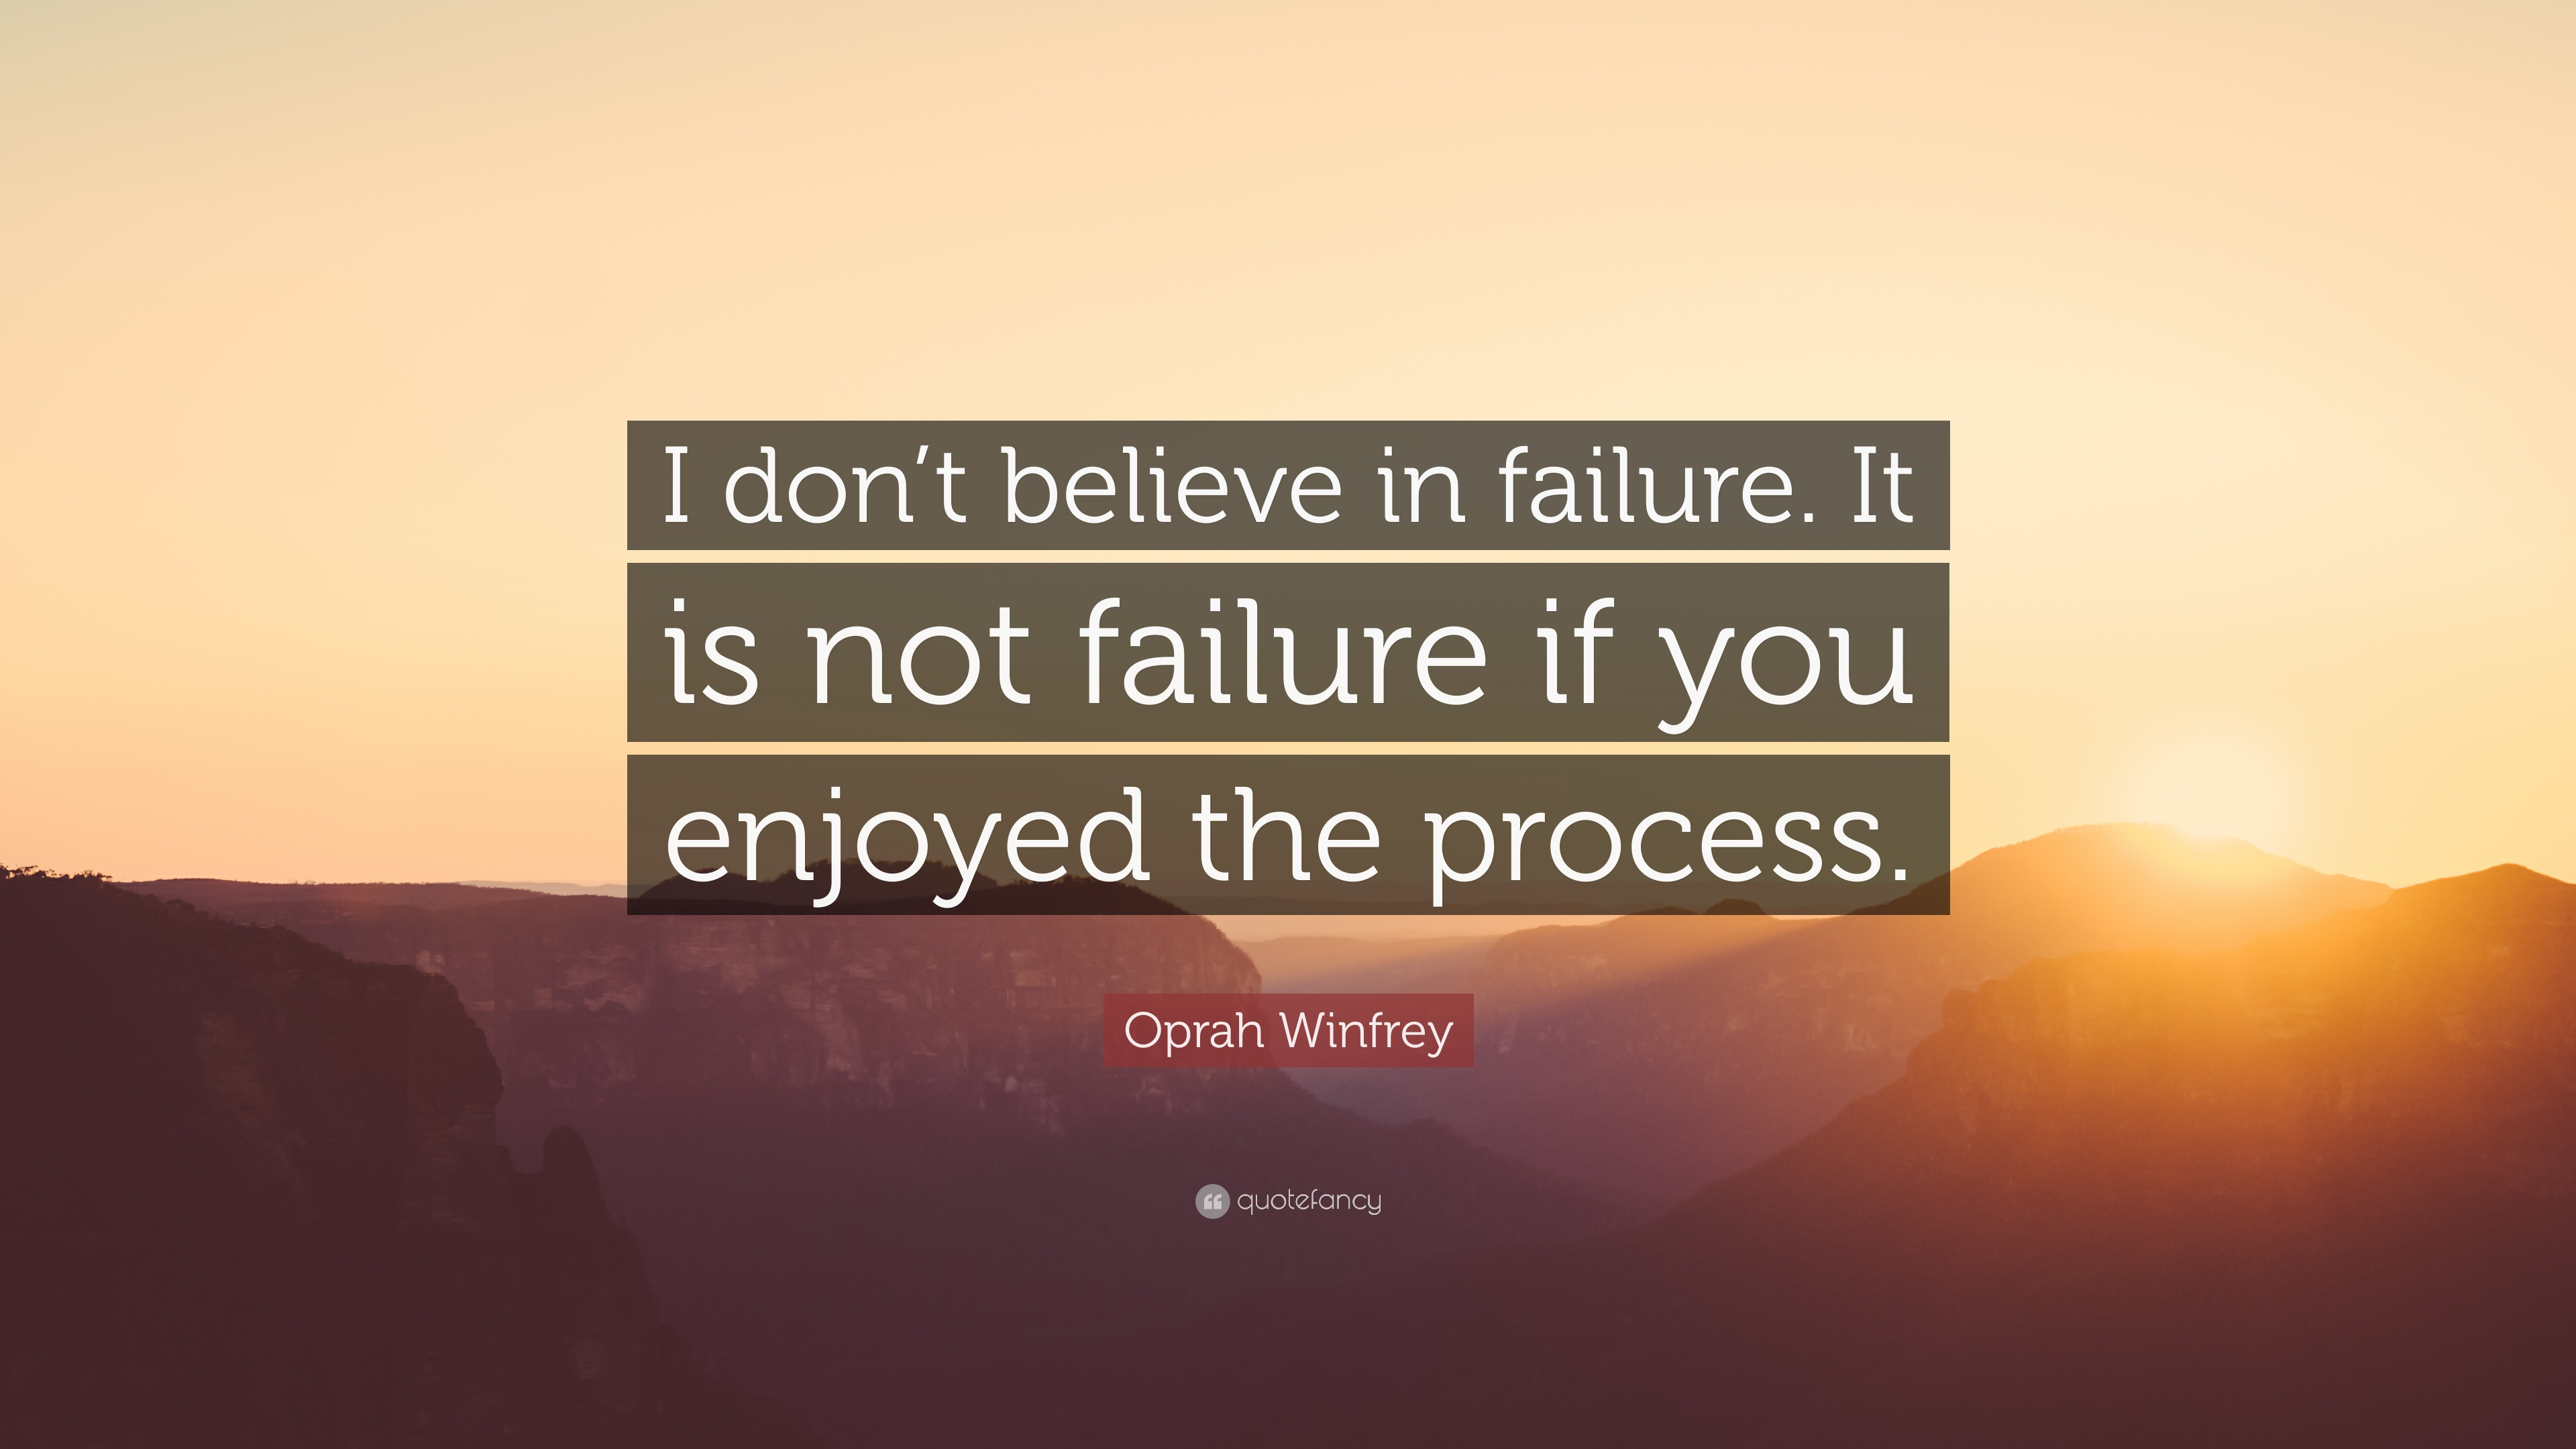 I Dont Believe in Failure Oprah Winfrey